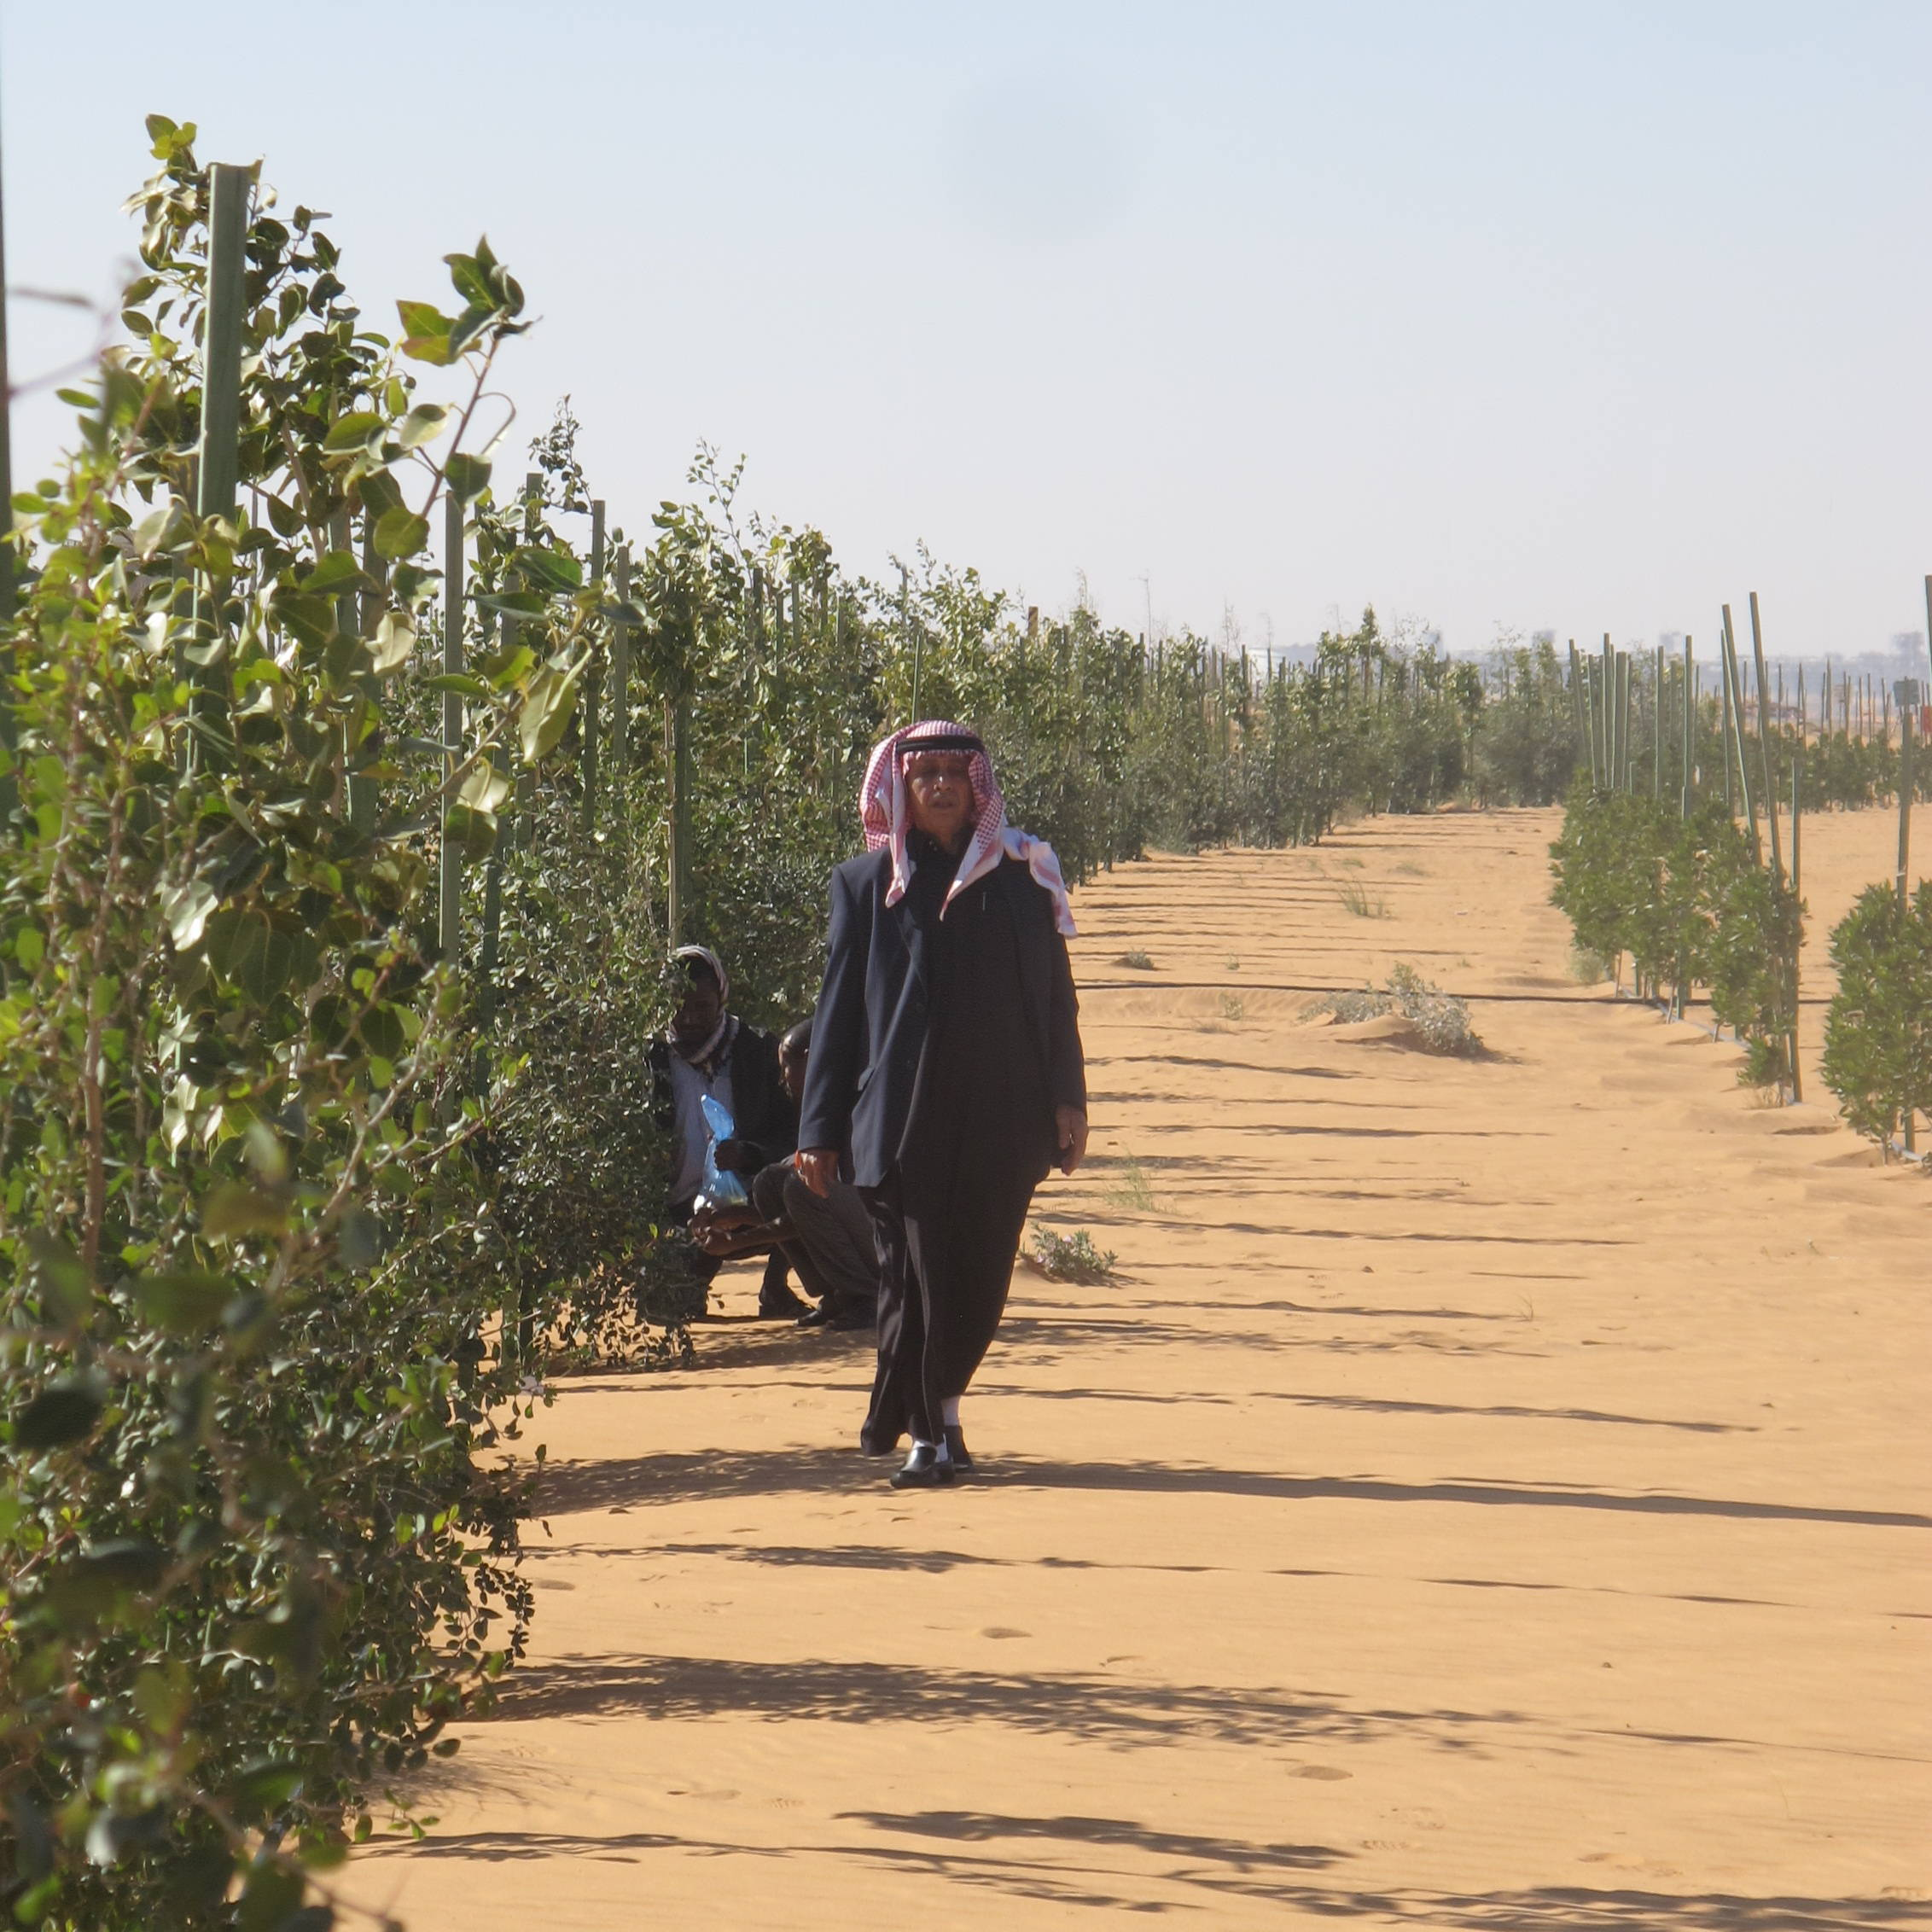 Ibrahim in the Khurais desert project with 4600 fruit trees.